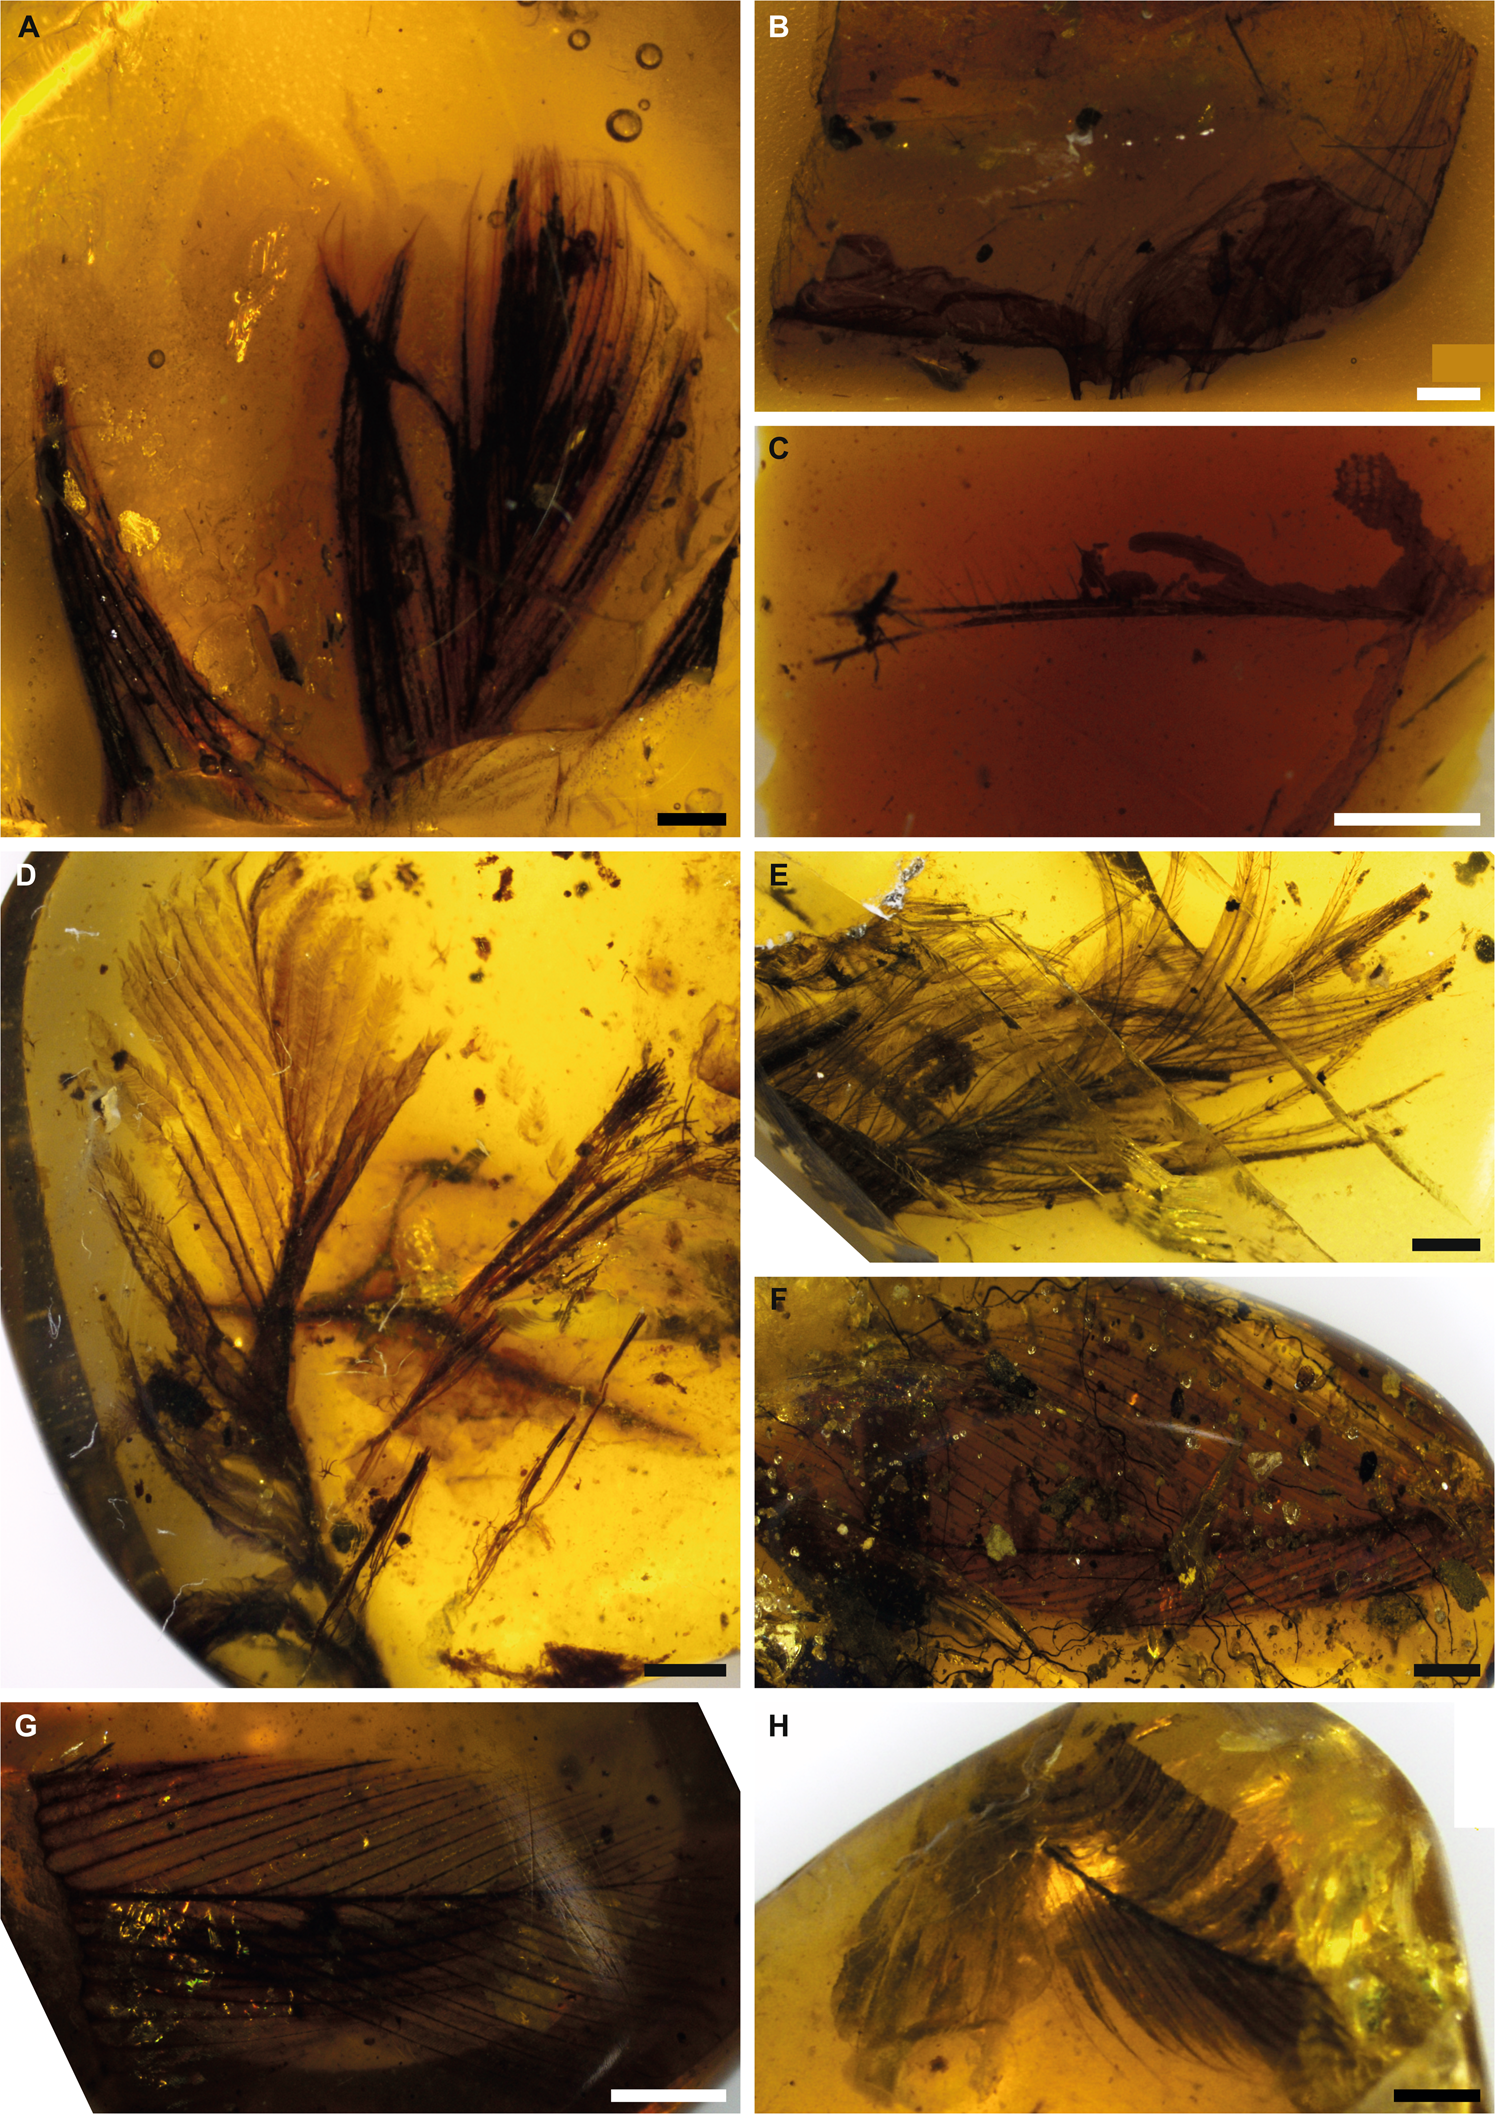 Ancient amino acids from fossil feathers in amber